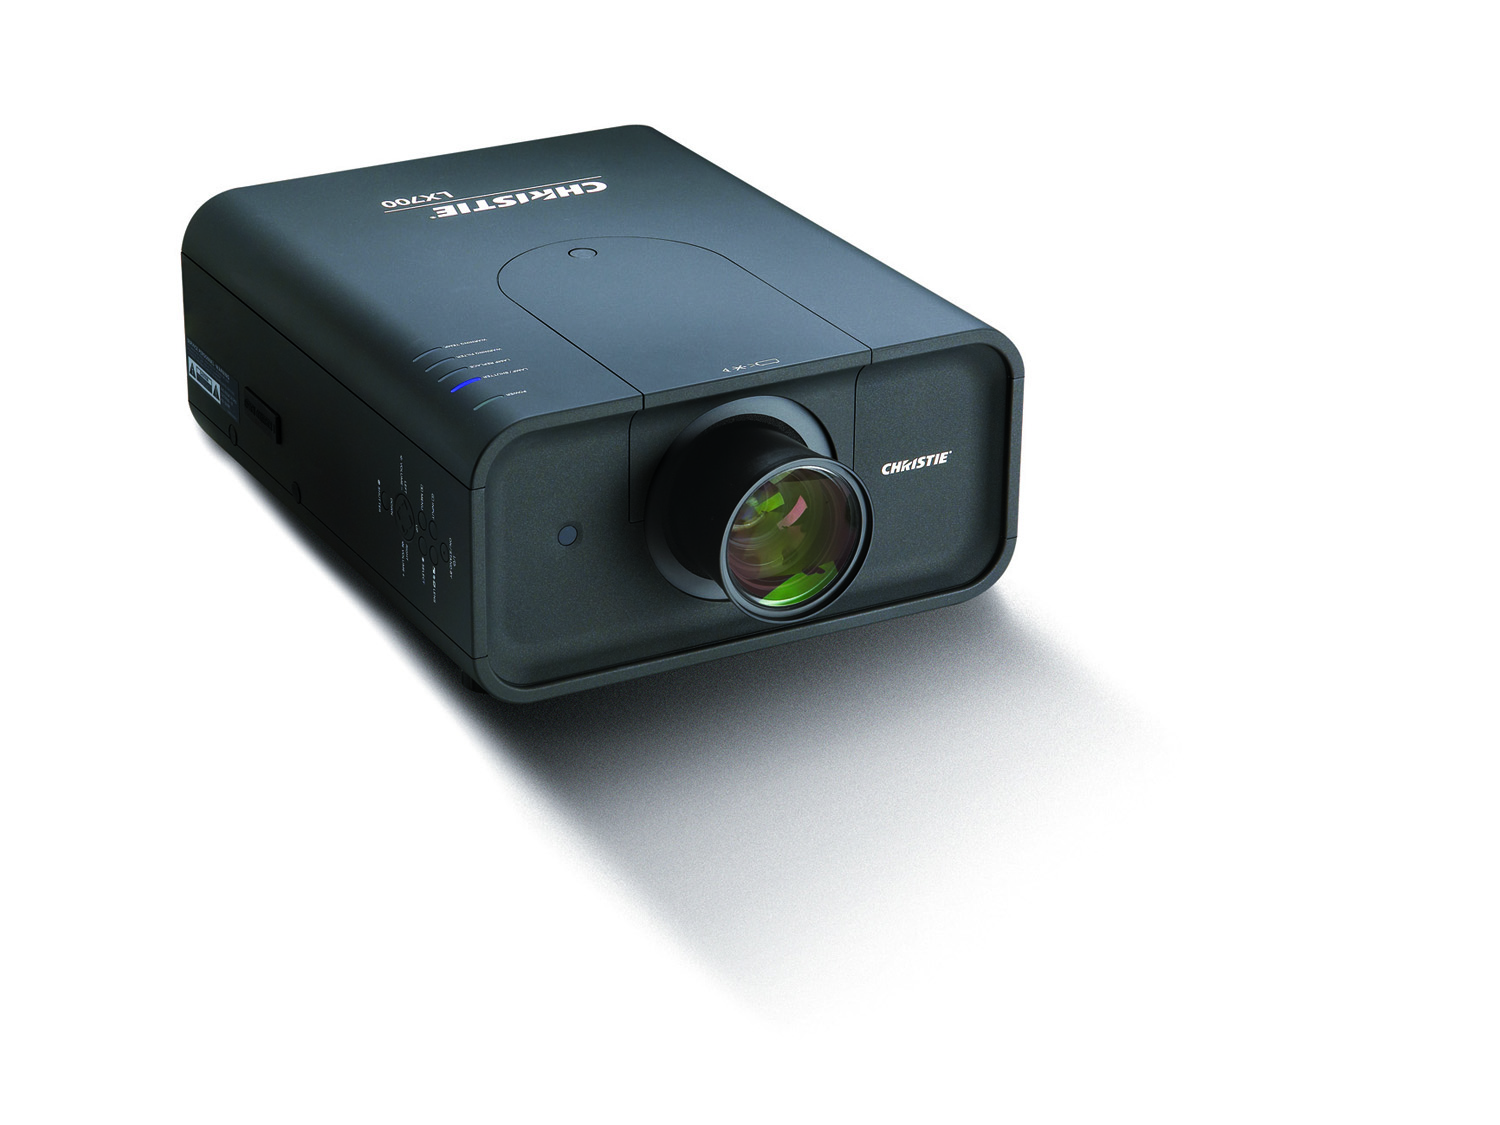 /globalassets/.catalog/products/images/christie-lx700/gallery/christie-lx700-lcd-digital-projector-highleft_pr.jpg